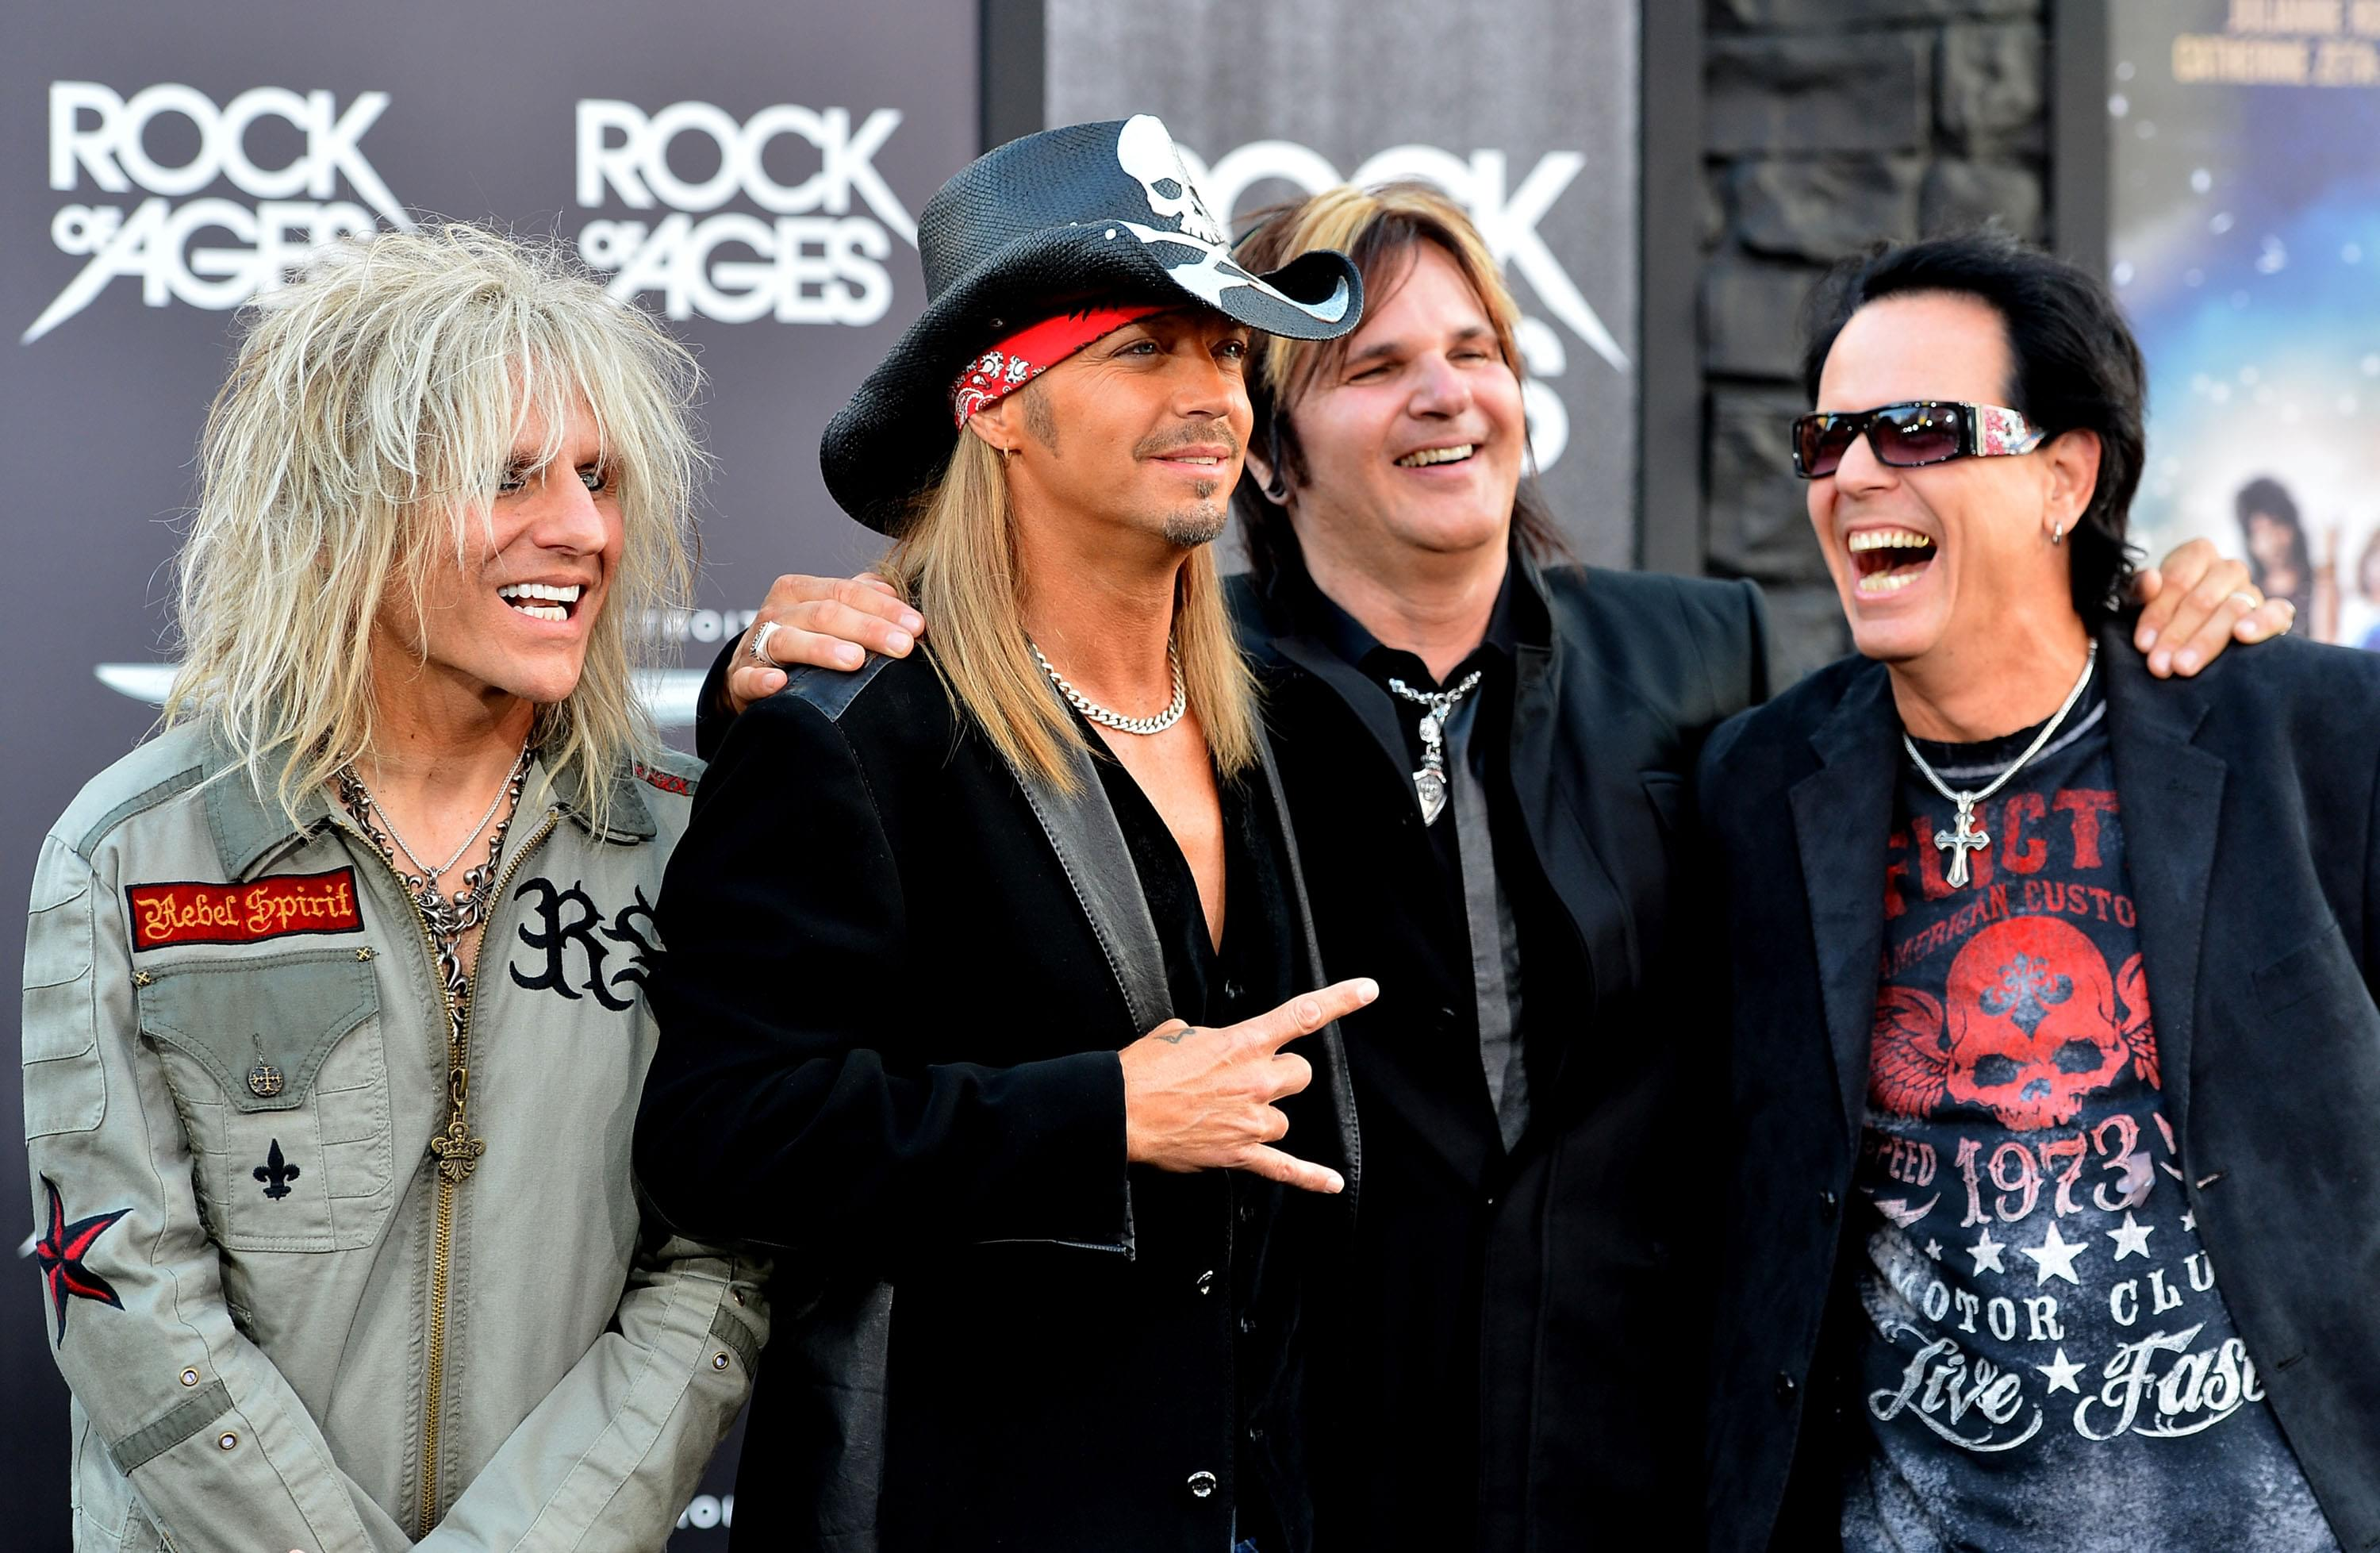 Bret Michaels Warns His Fans, Family and Friends: Scumbags Imposters Are On The Loose!